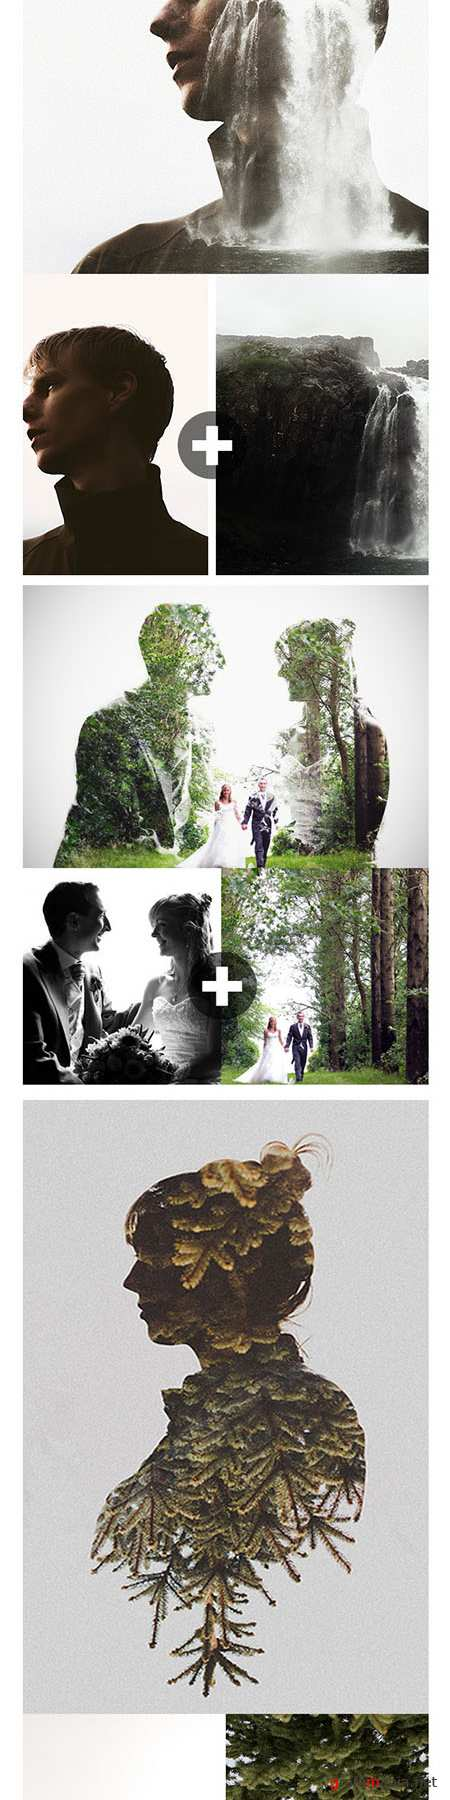 GraphicRiver - Double Exposure Photoshop Action 11617764